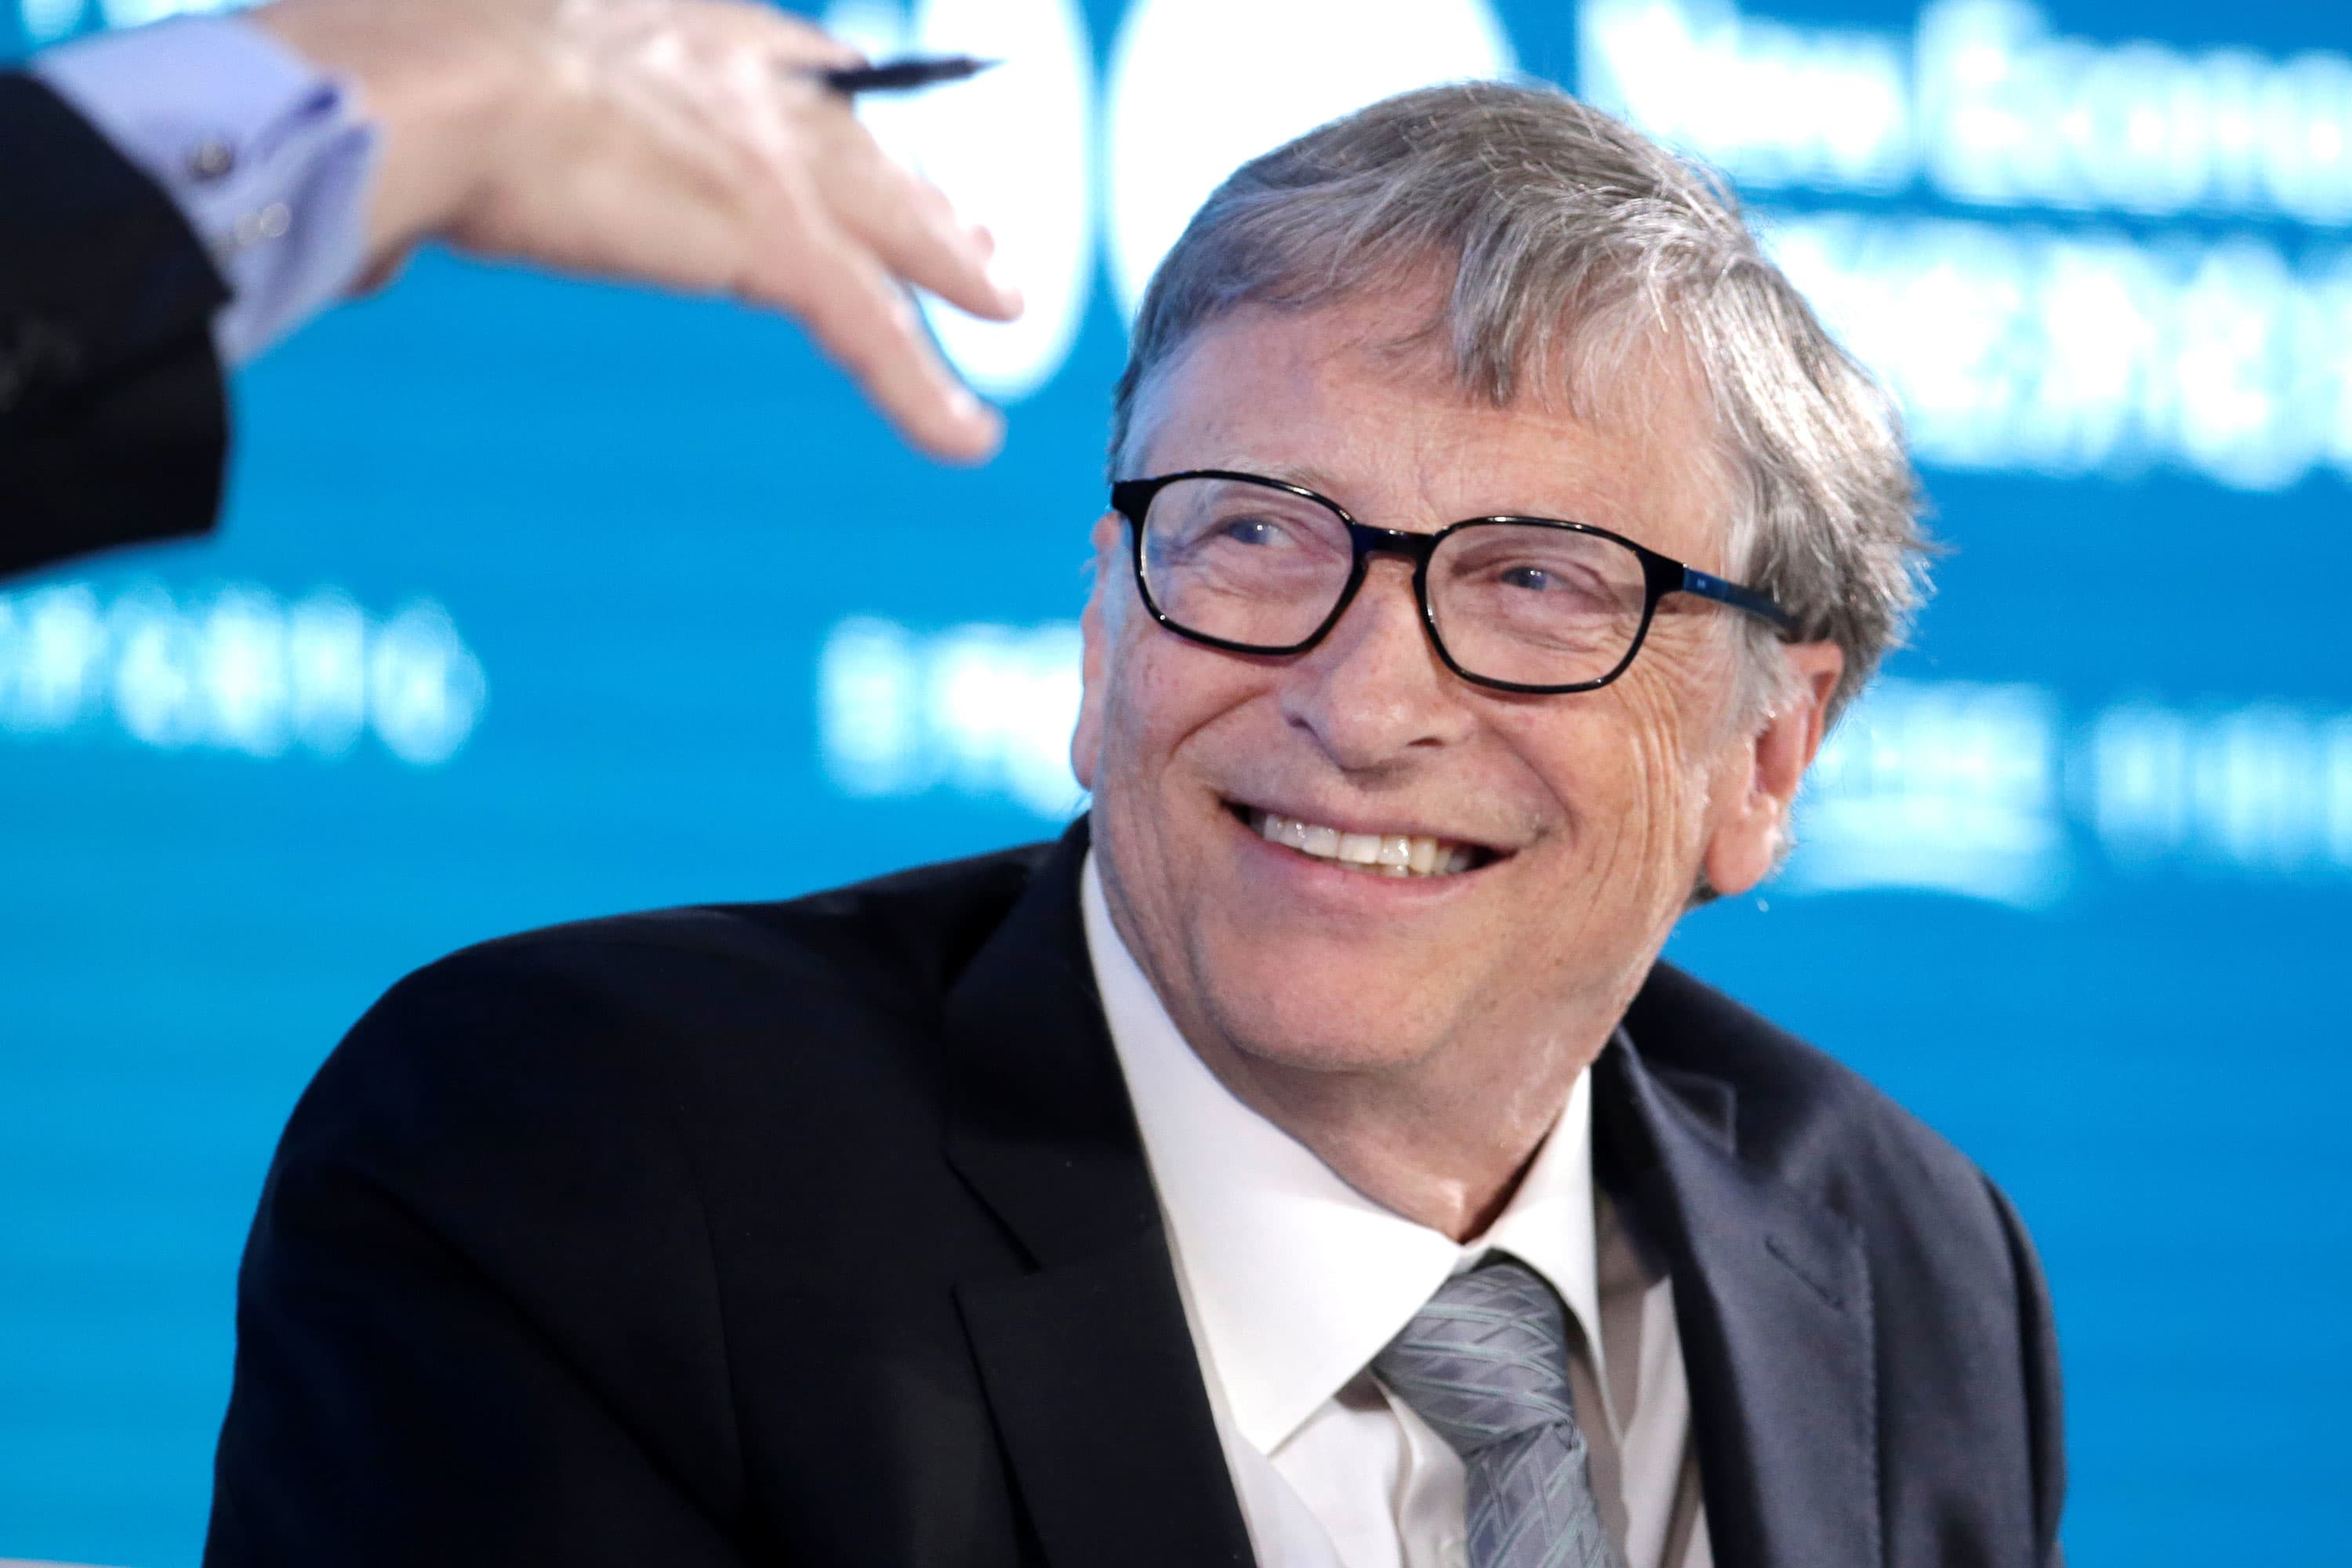 Bill Gates says the US missed its chance to avoid coronavirus shutdown and businesses should stay closed